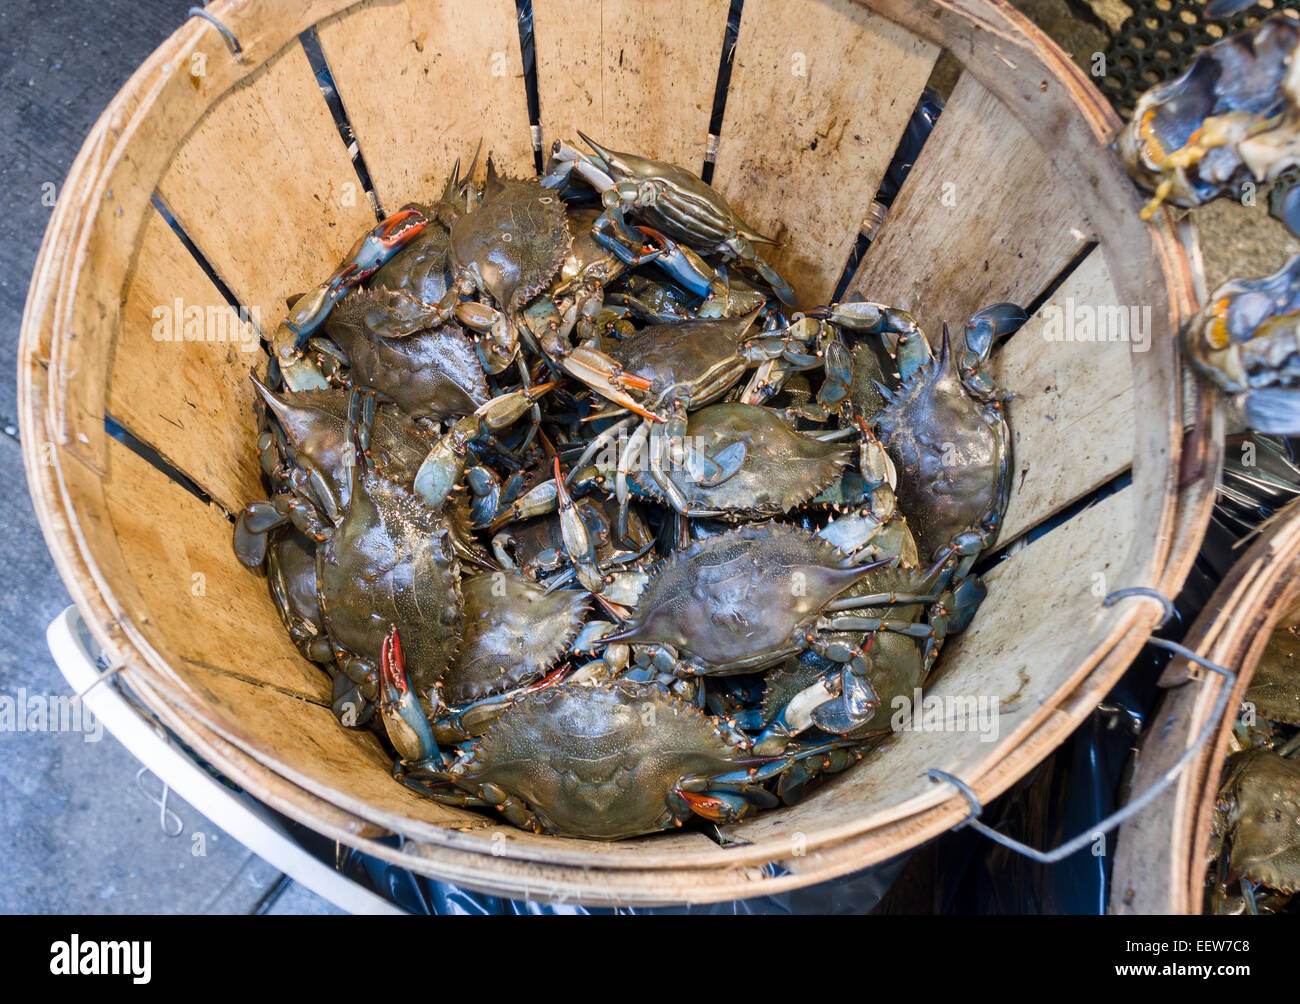 A peck of live crabs. A wooden basket keeps live crabs from escaping into the street at a fish monger's street - Stock Image